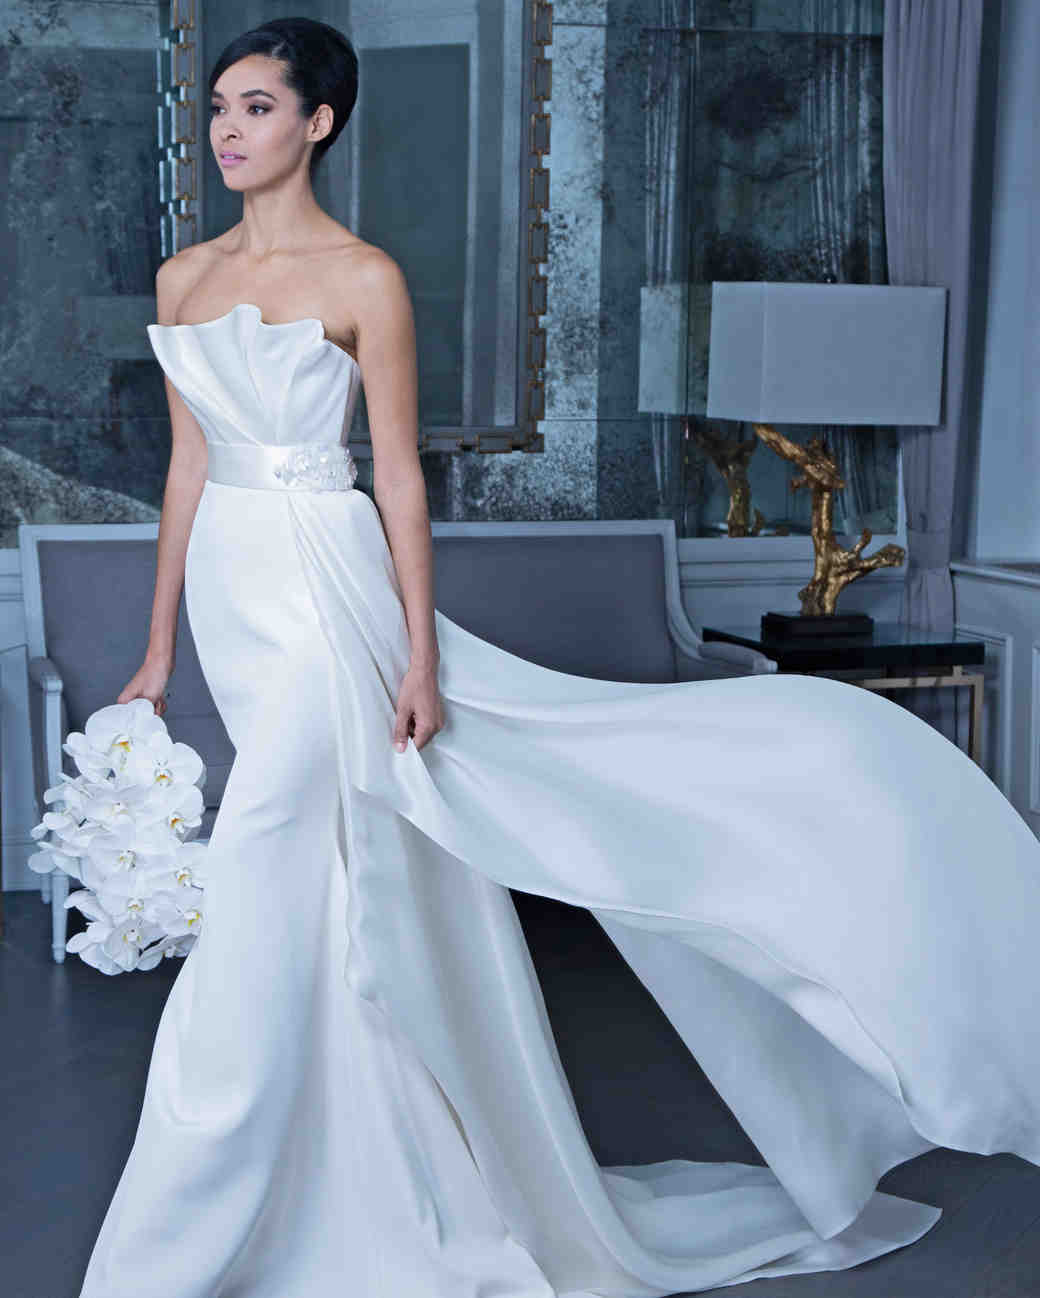 Romona strapless wedding dress with train fall 2019